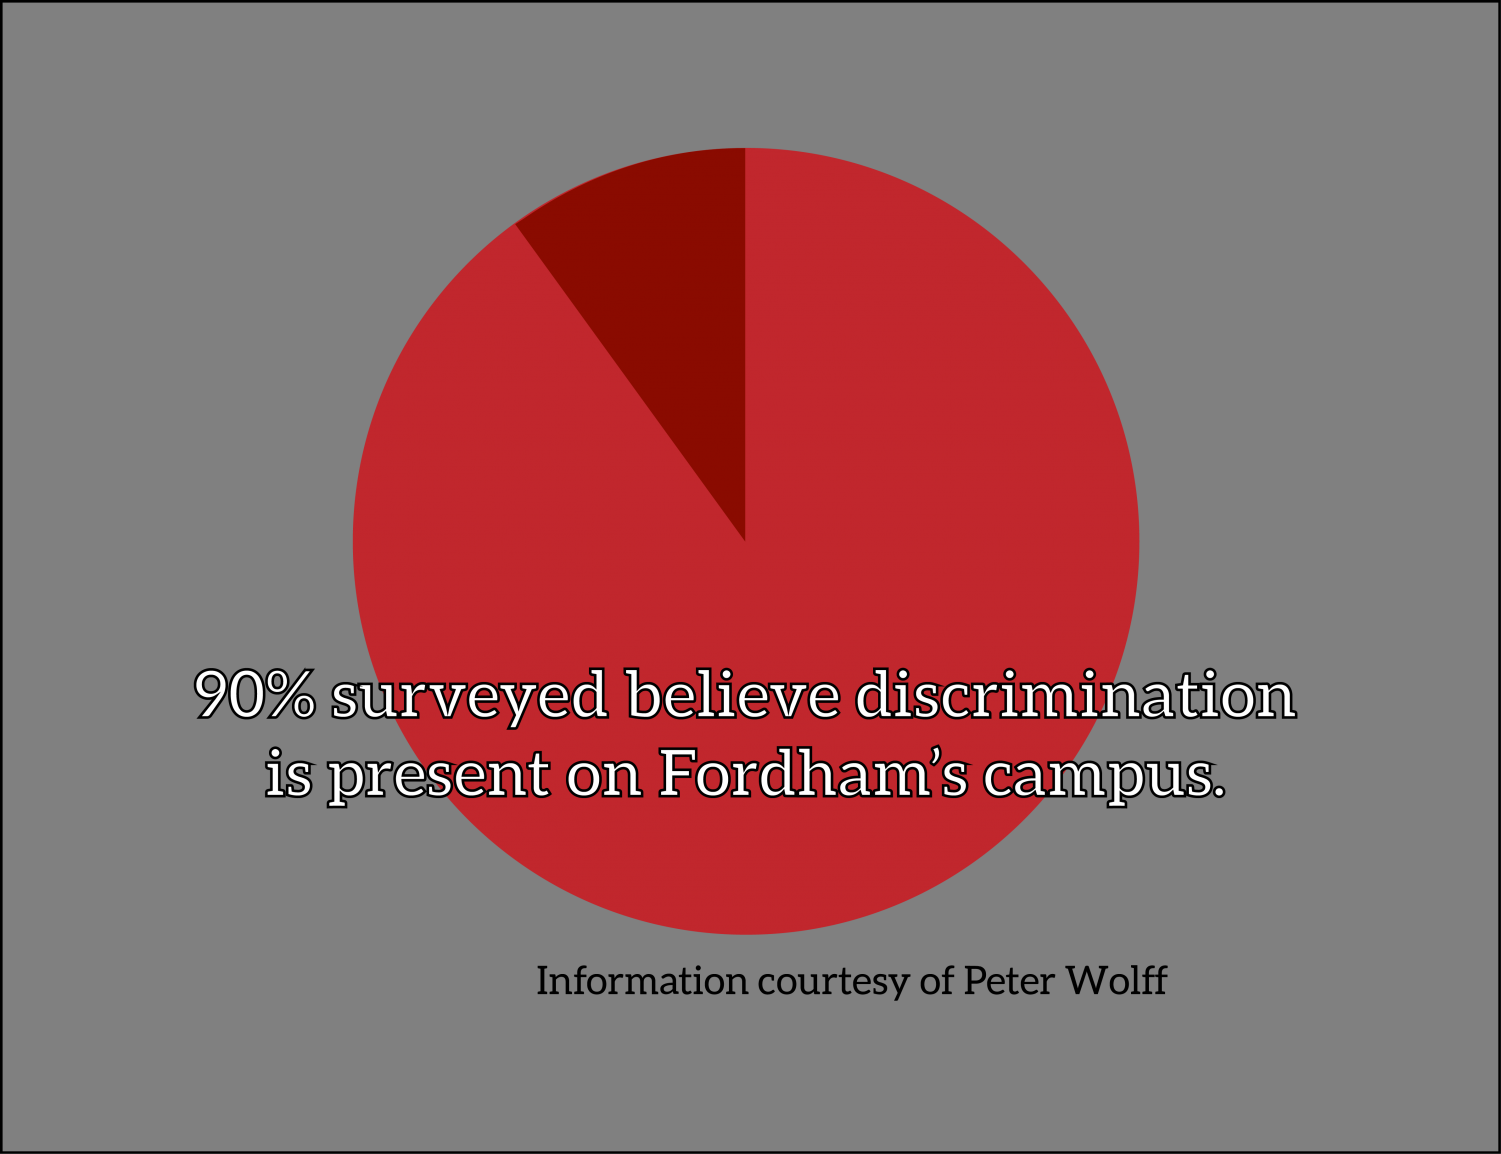 for an article about anti-racist education, a pie graph with text over it that says 90% surveyed believe discrimination is present on Fordham's campus